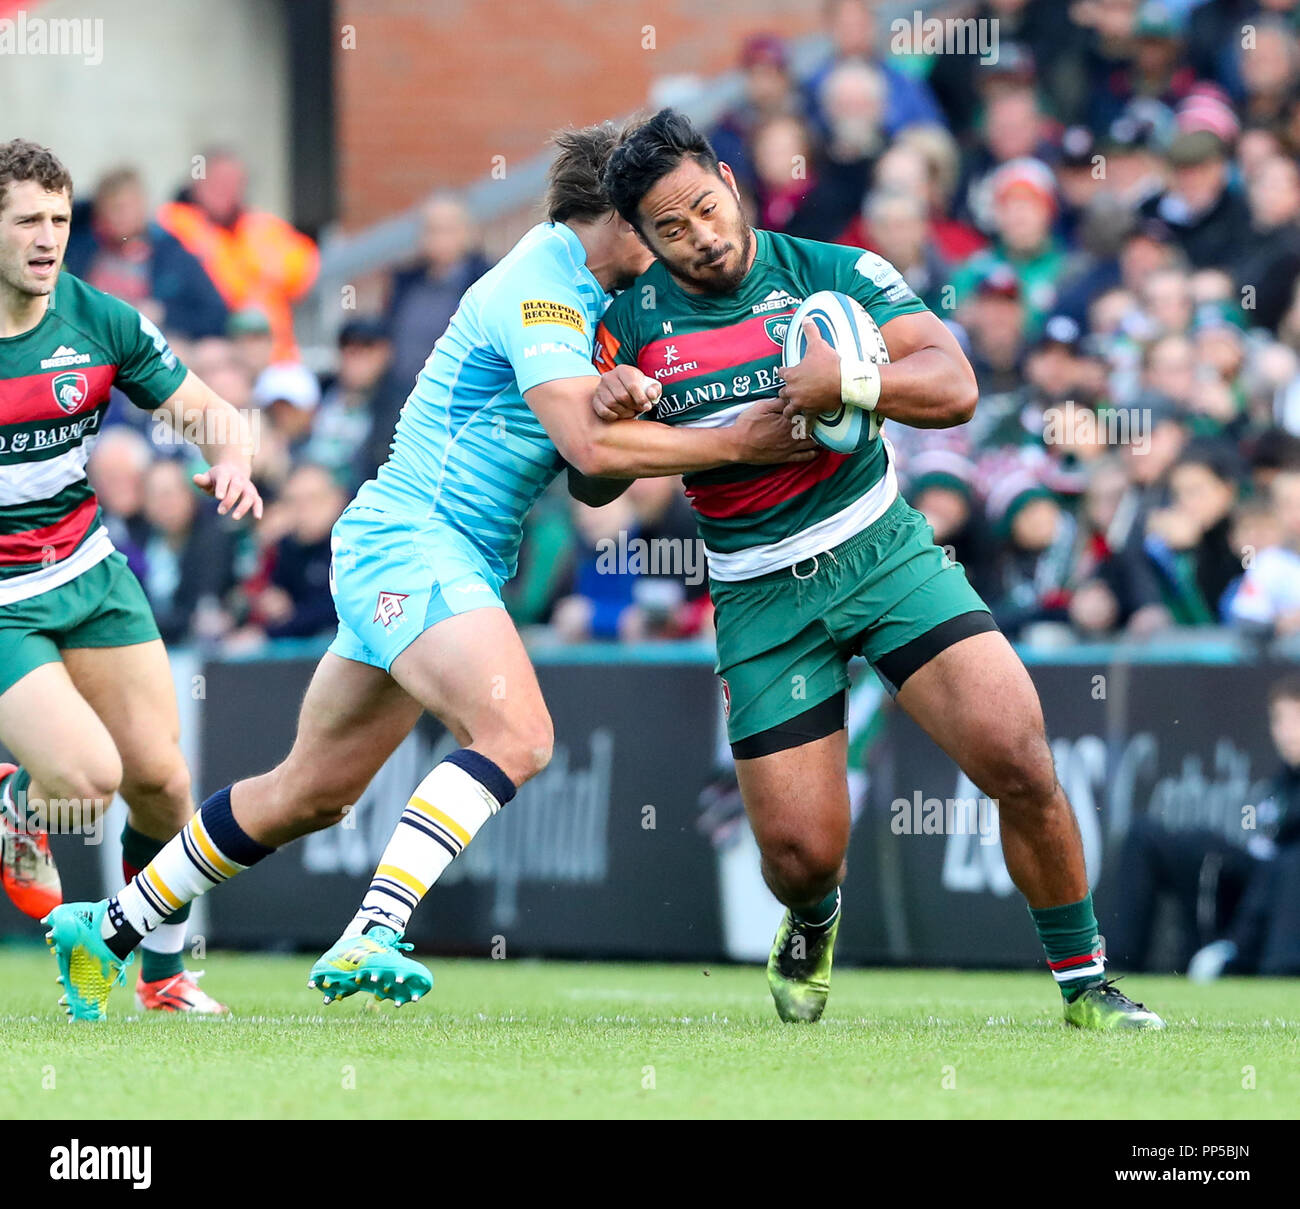 Leicester, UK. 23rd September, 2018. Premiership Rugby Union.     Leicester Tigers v Worcester Warriors  rfc.        Manu Tuilagi on the charge for Tigers during the Gallagher Premiership game played at Welford Road Stadium, Leicester, England. Credit: Phil Hutchinson/Alamy Live News - Stock Image